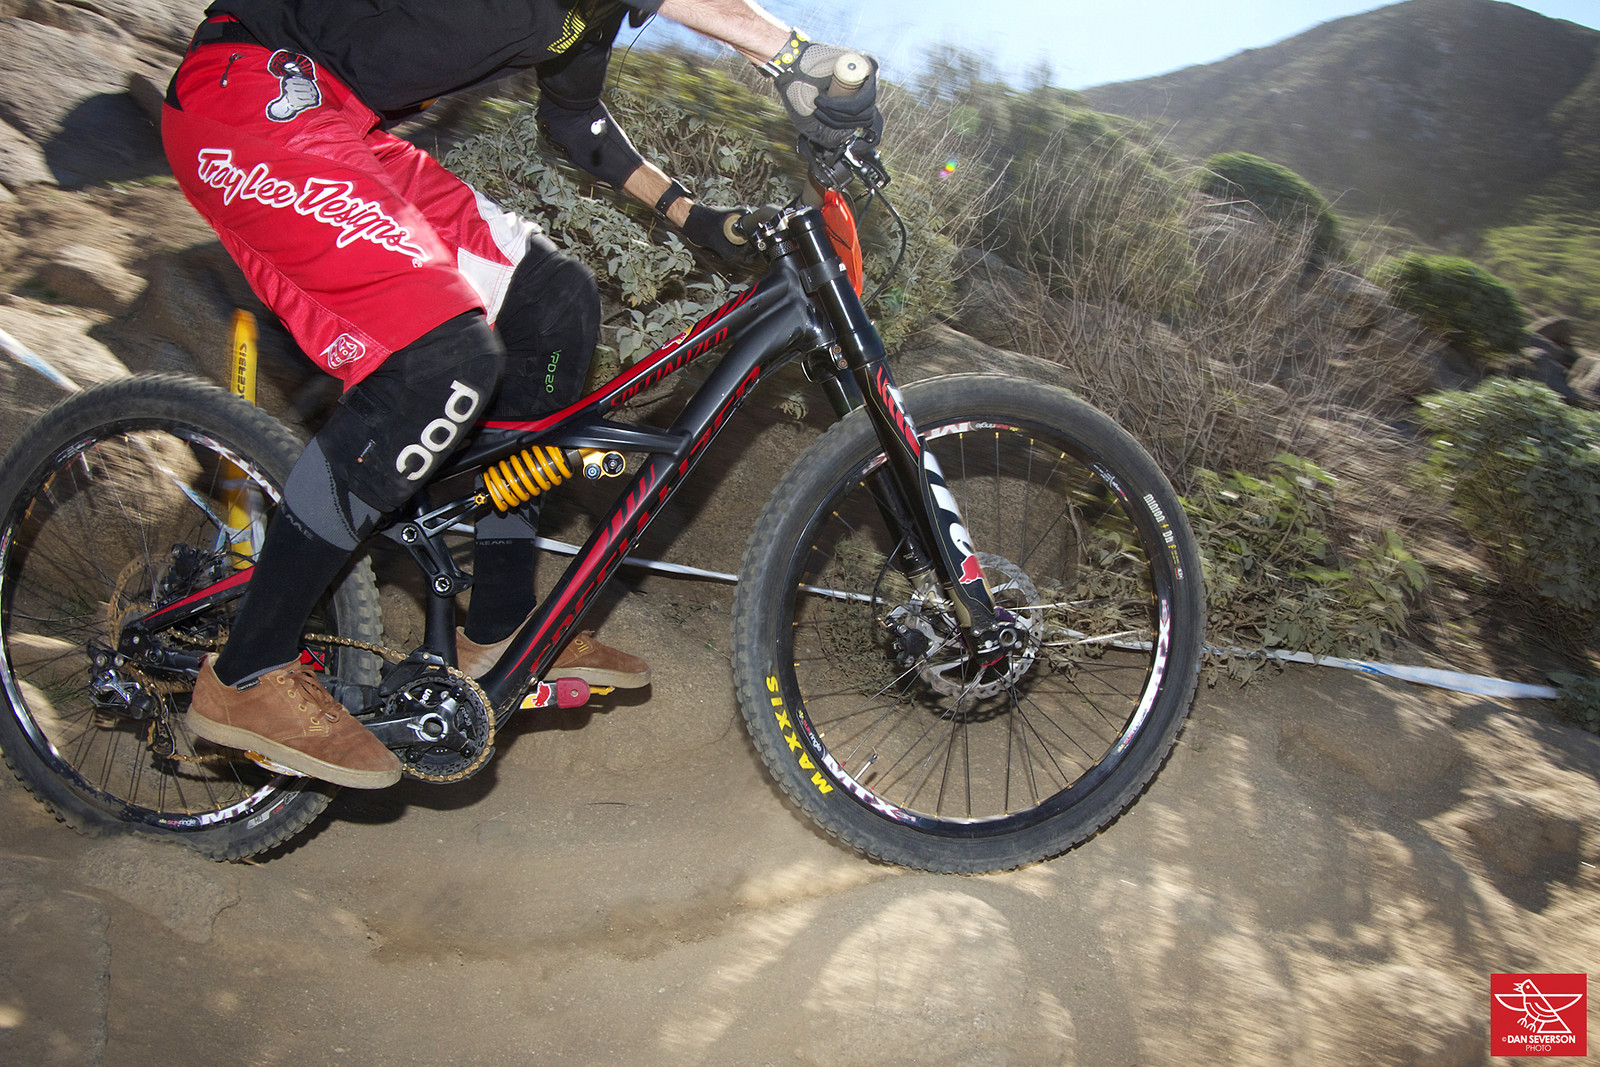 G-Out Project: Fontana 2015 - Specialized Enduro - danseverson photo - Mountain Biking Pictures - Vital MTB